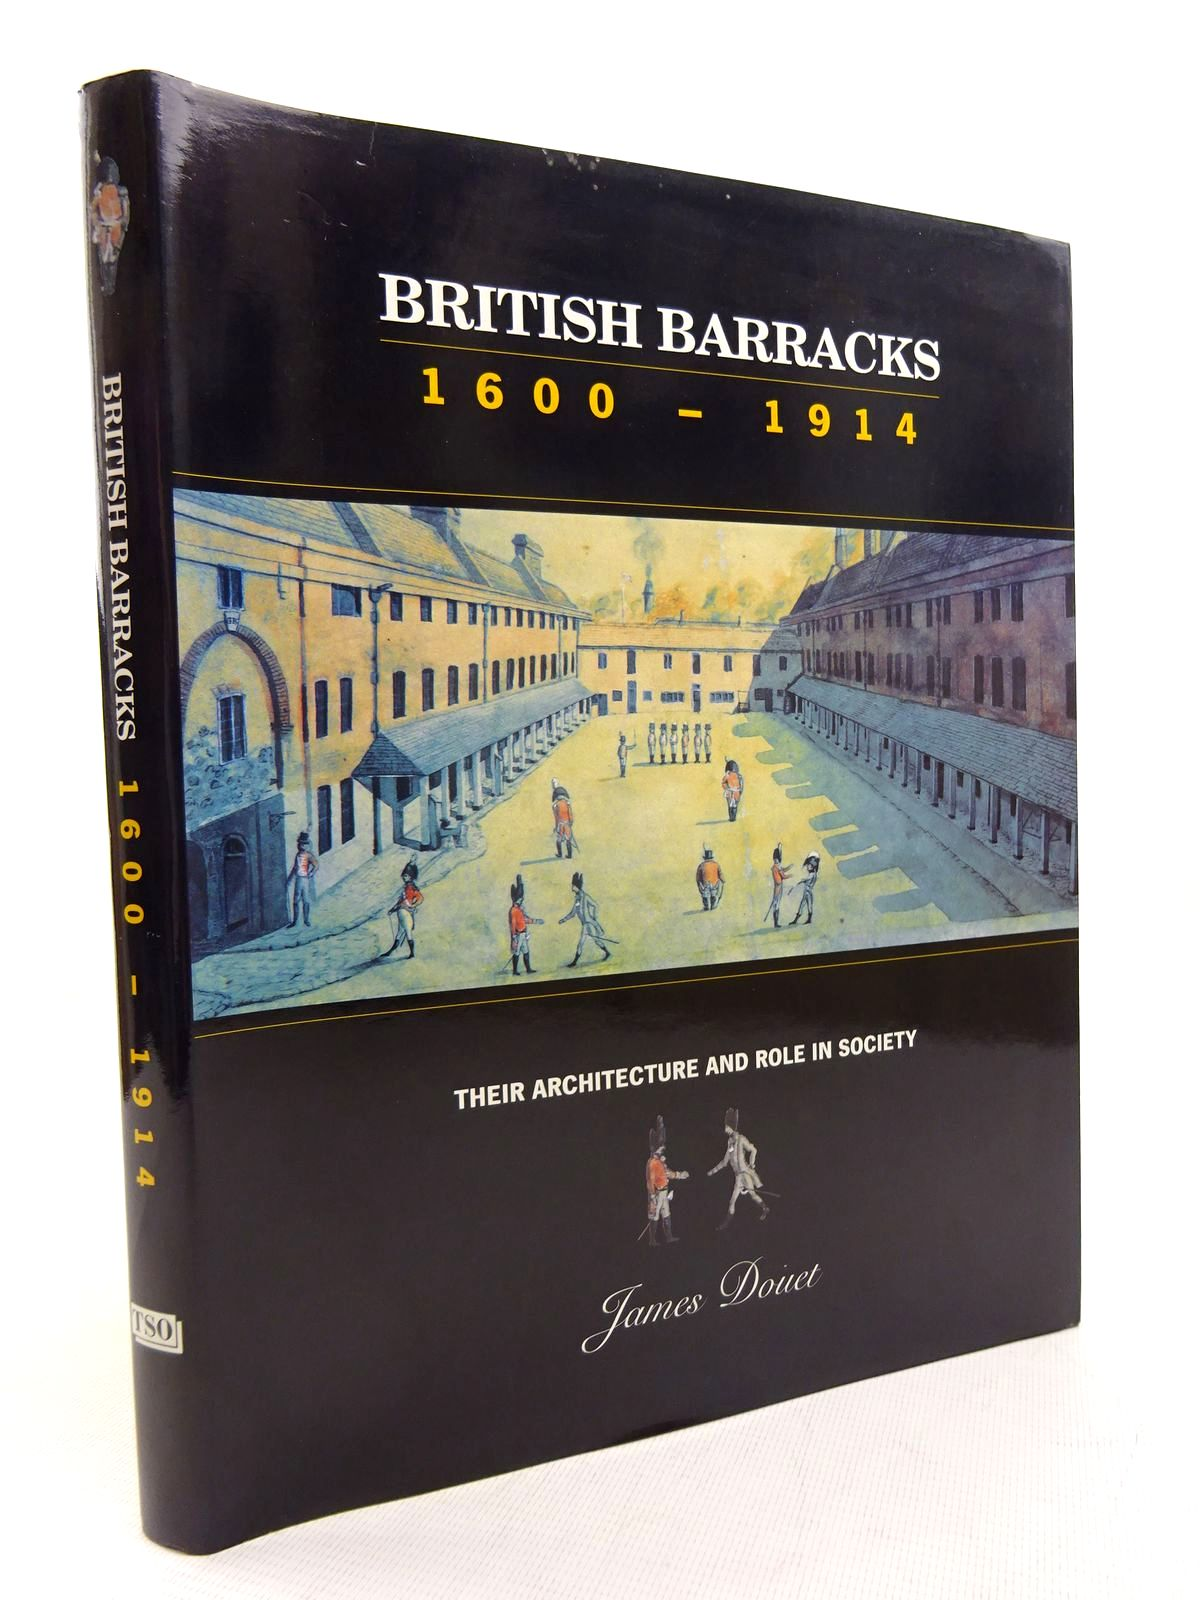 Photo of BRITISH BARRACKS 1600-1914: THEIR ARCHITECTURE AND ROLE IN SOCIETY written by Douet, James published by The Stationery Office (STOCK CODE: 1816319)  for sale by Stella & Rose's Books